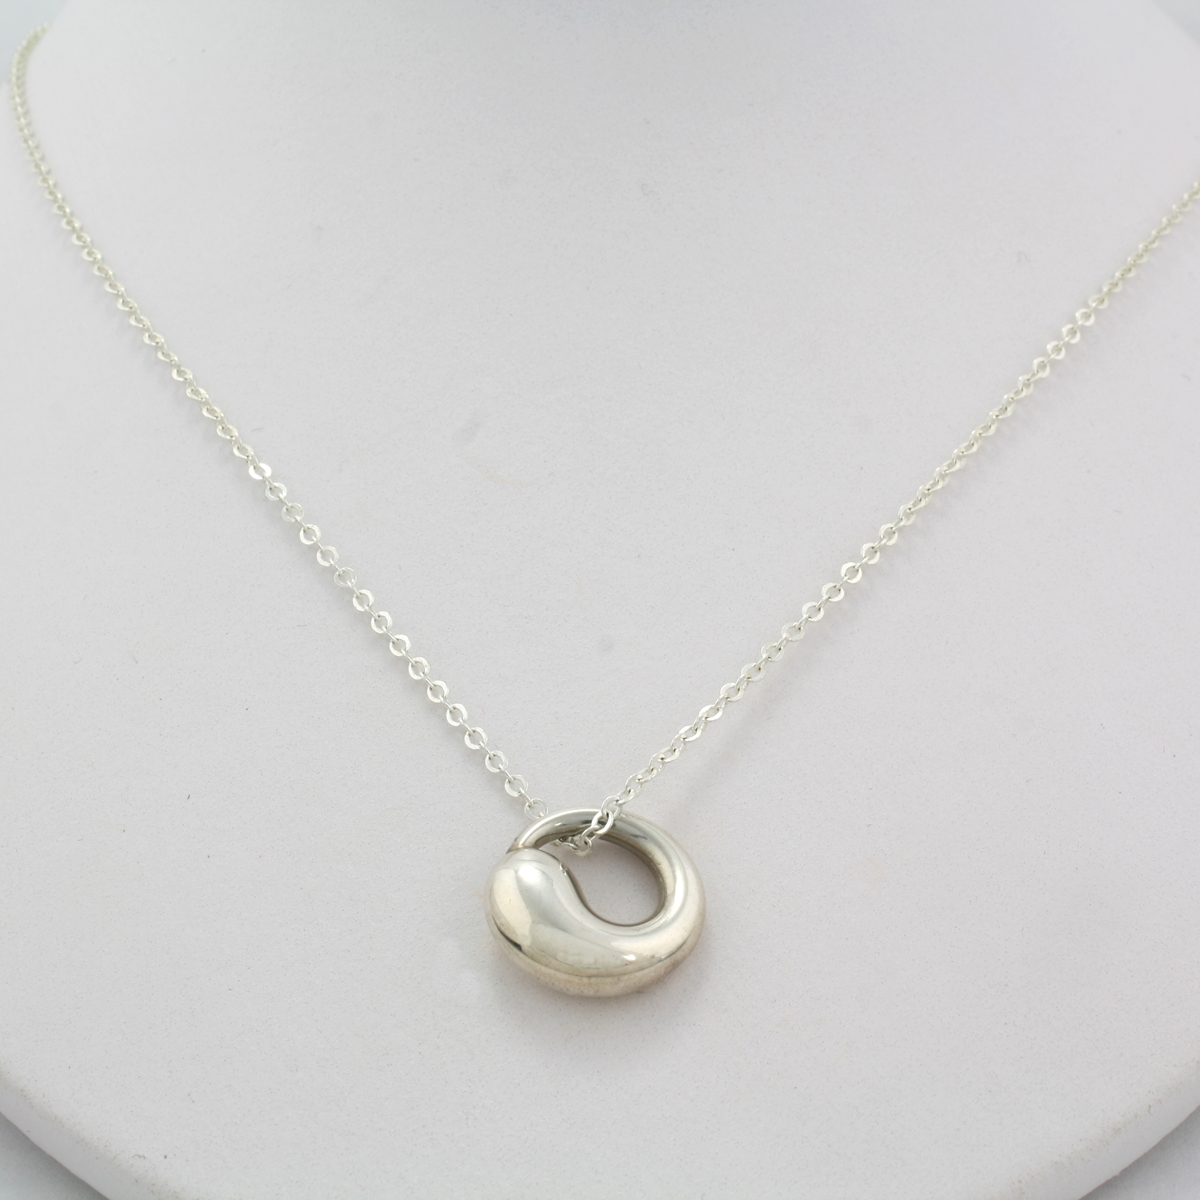 Tiffany co eternal circle pendant with chain mozeypictures Choice Image